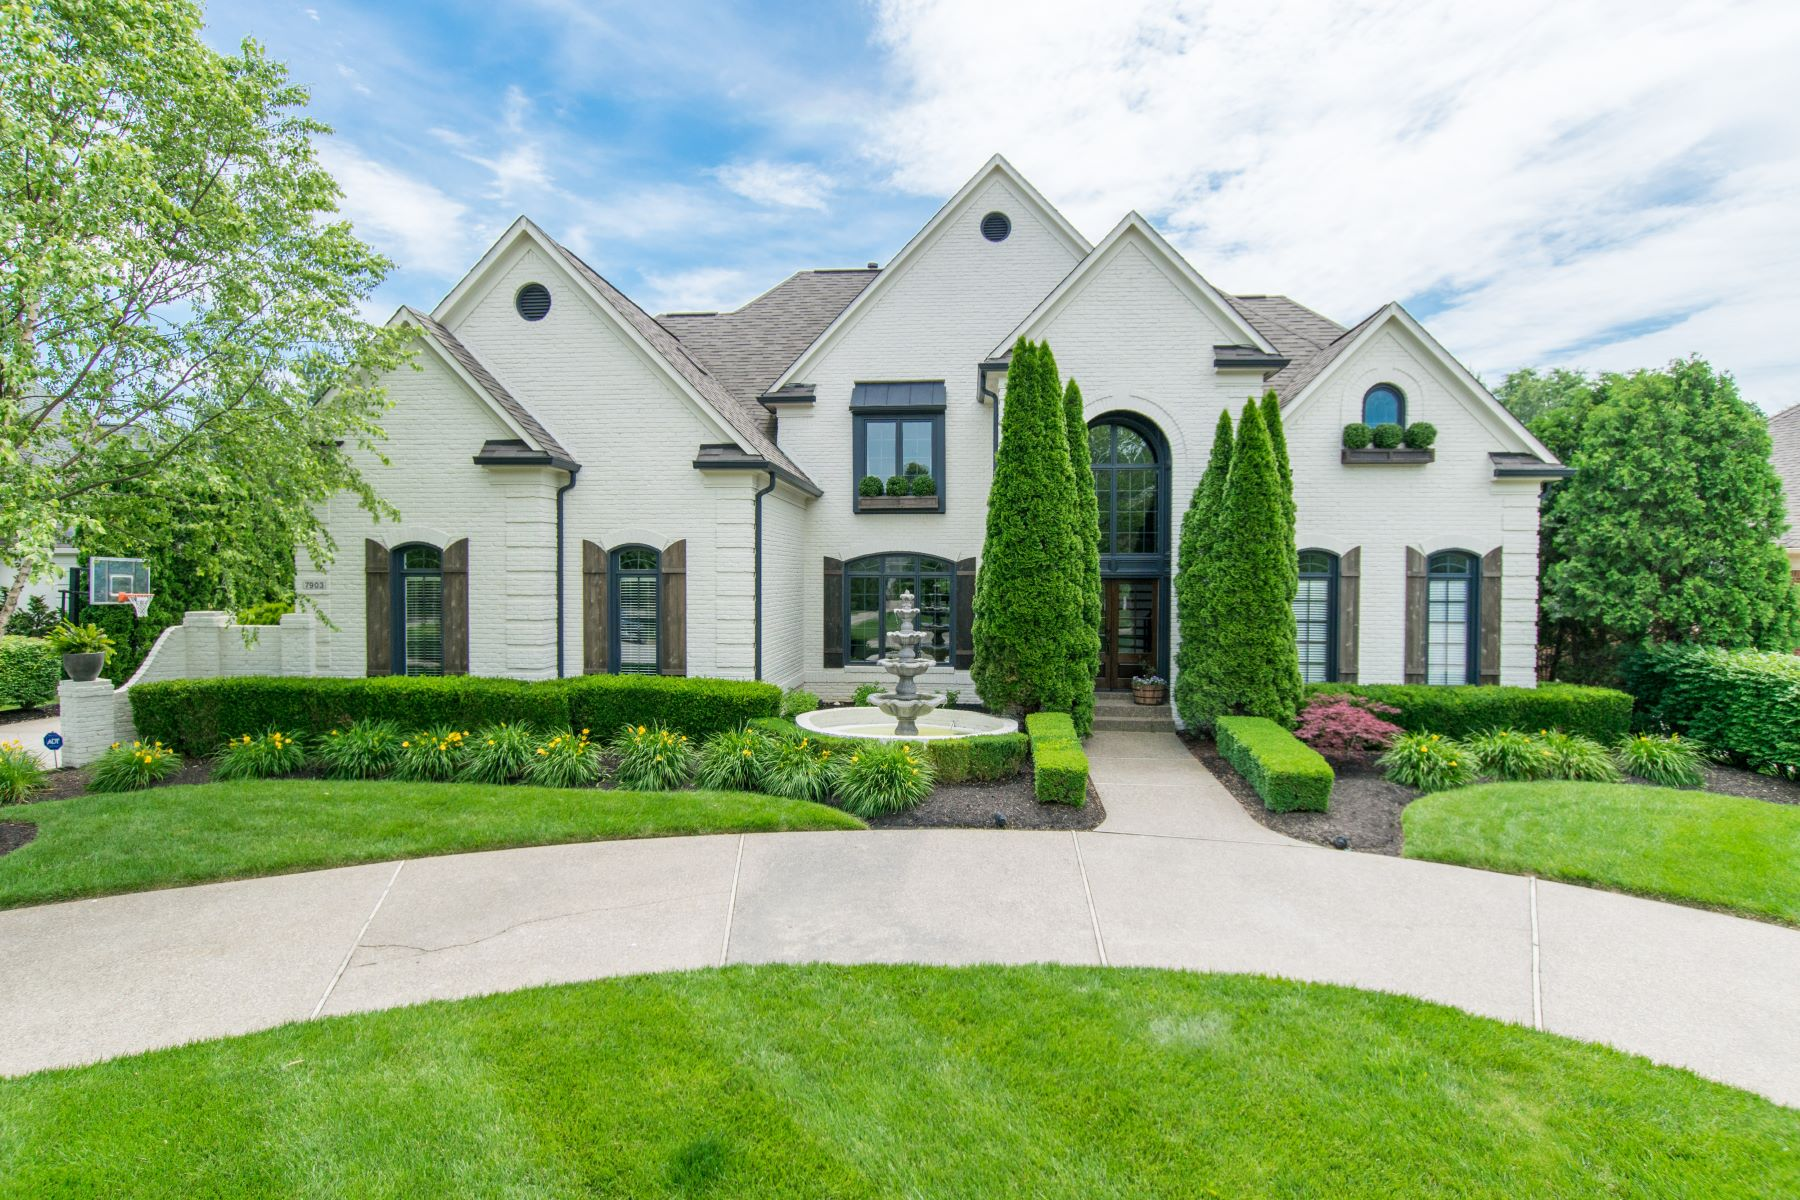 Single Family Home for Sale at 7903 Innisbrook Court Prospect, Kentucky 40059 United States